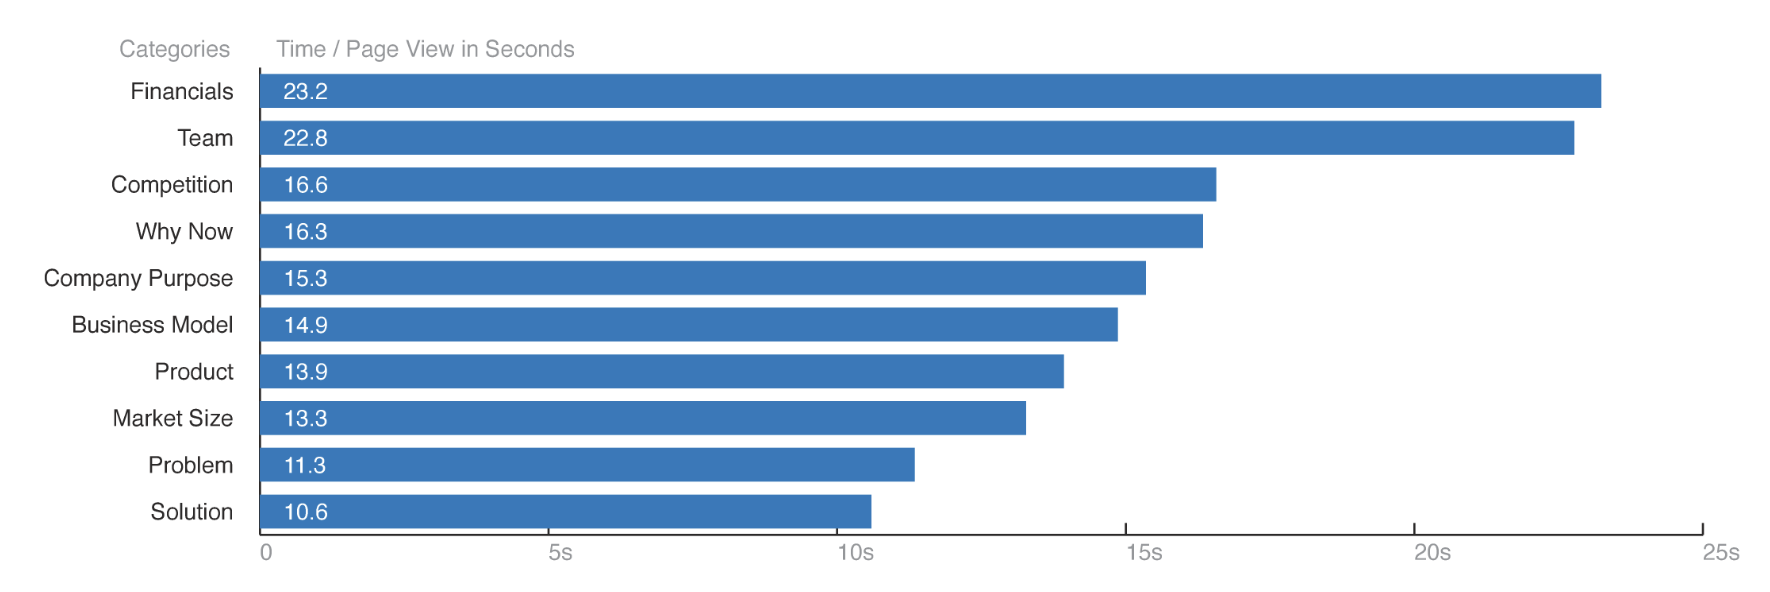 DocSend 2015 fundraising research time spent per page